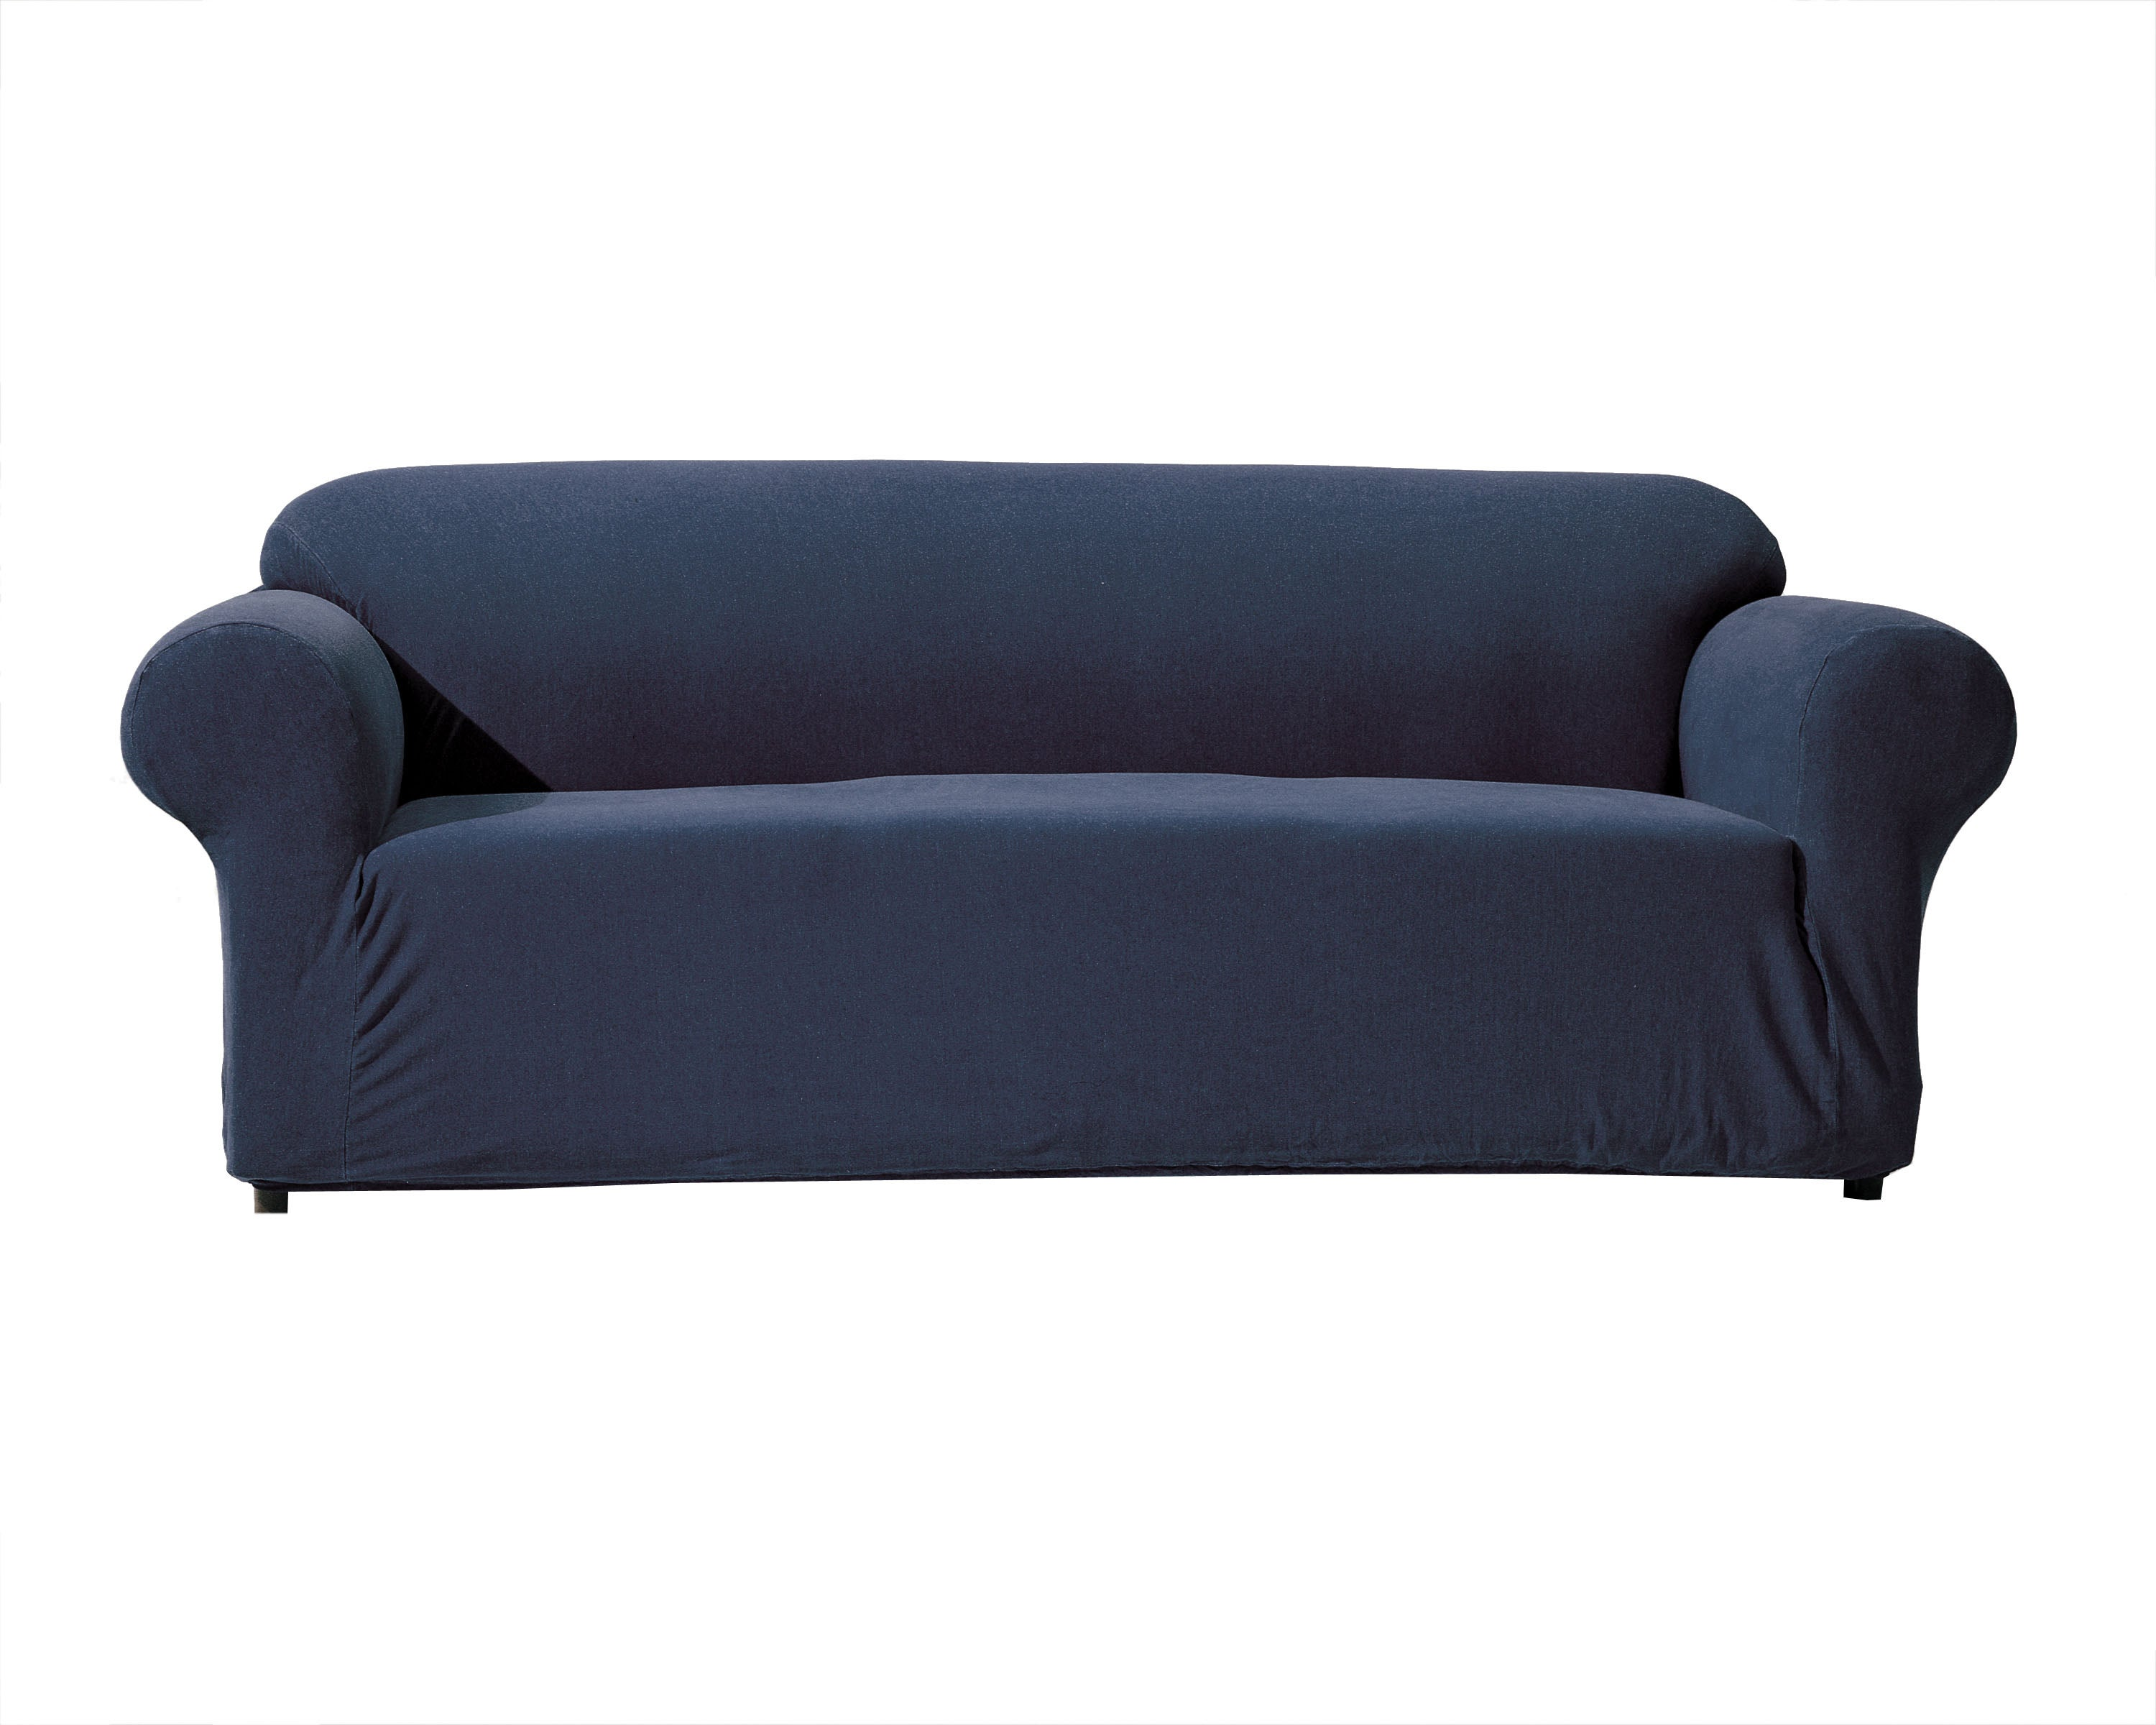 Denim Stretch Loveseat Slipcover 11332201 Shopping Big Discounts On Loveseat